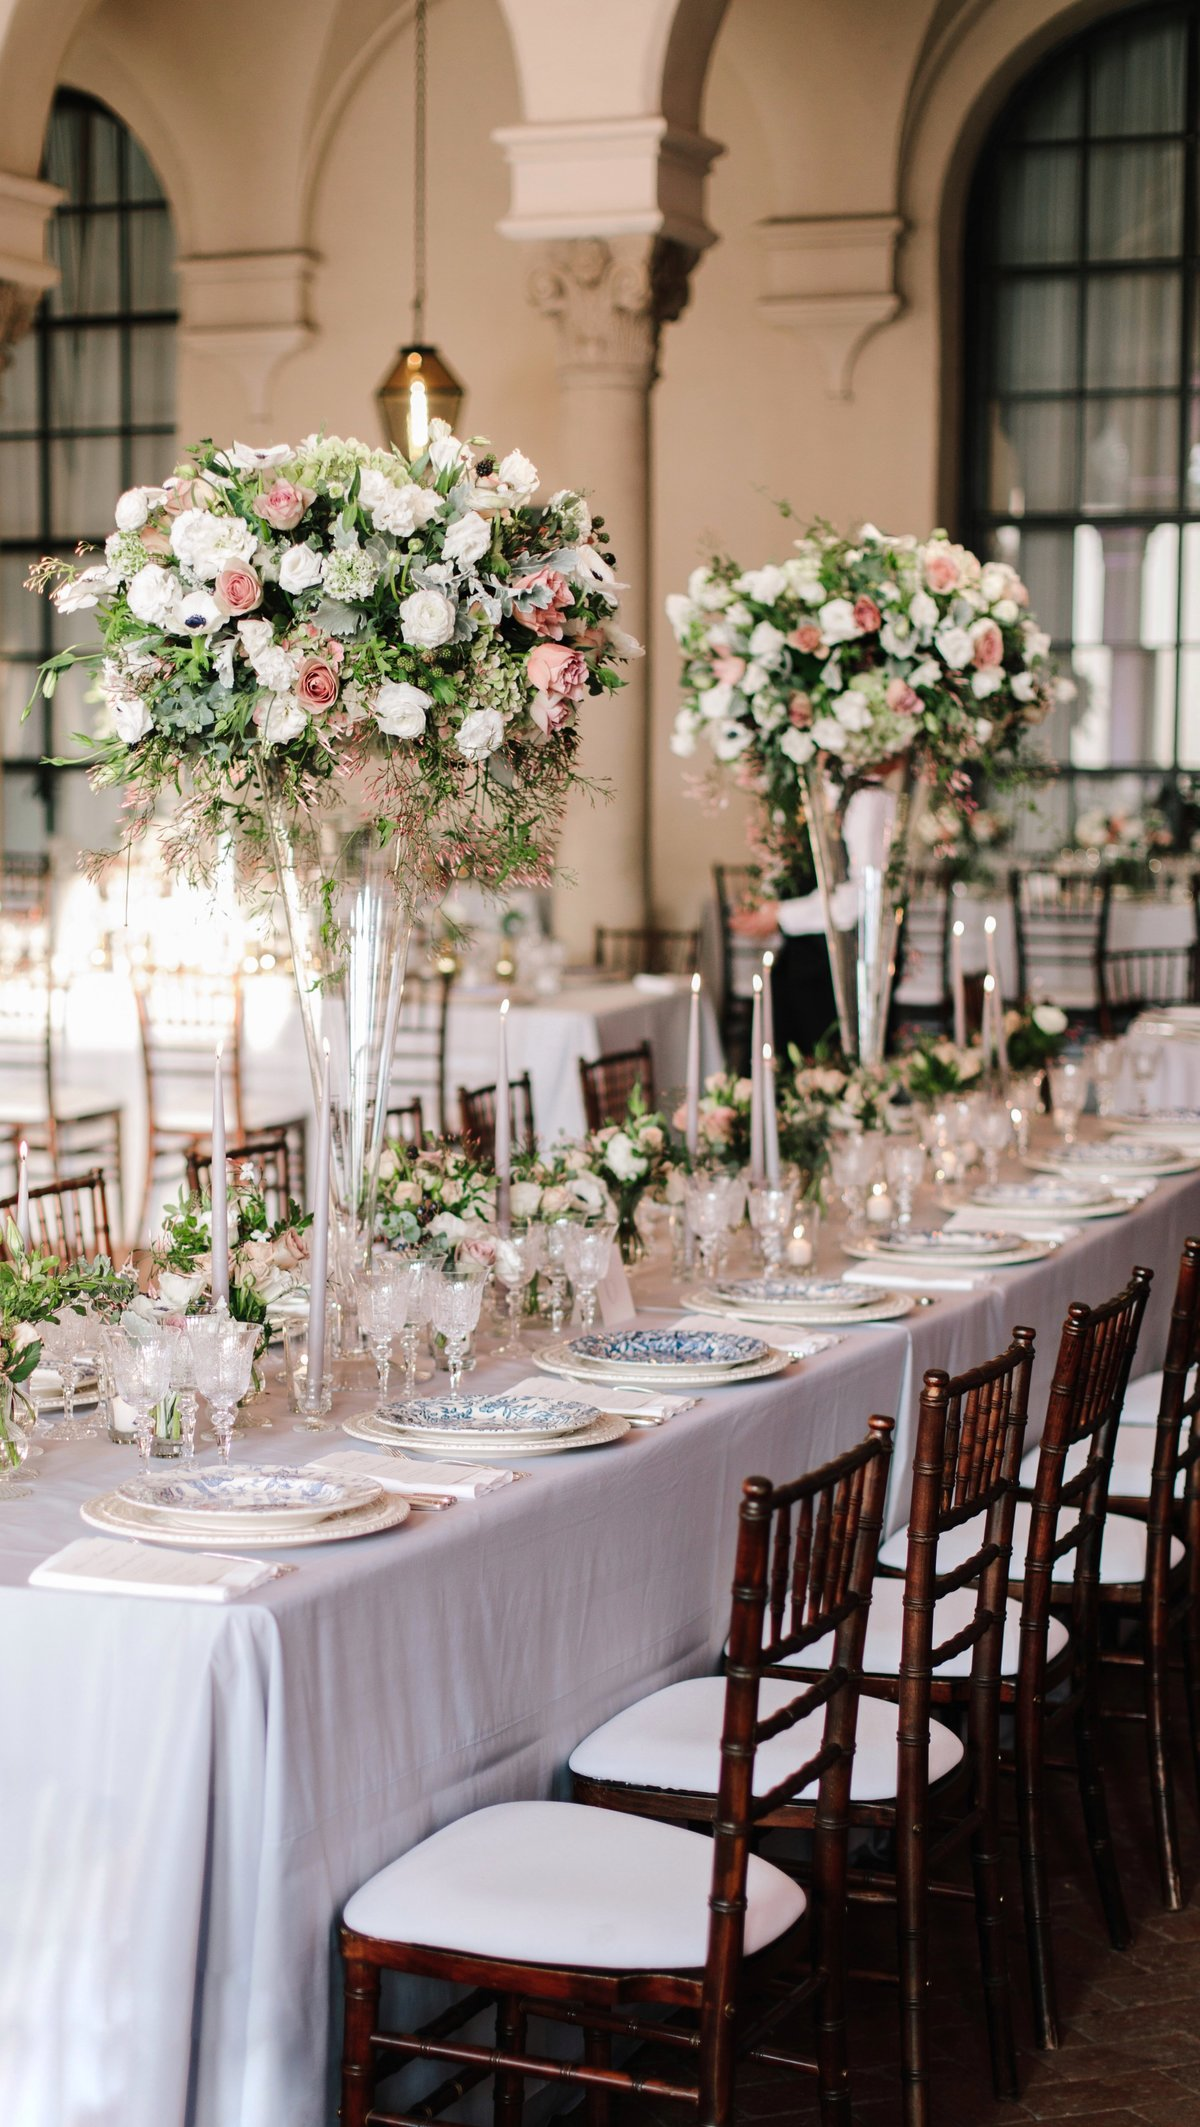 Reception for wedding by Jenny Schneider Events at The Anthenaeum in Pasadena, California. Photo by Heather Kincaid Photography.